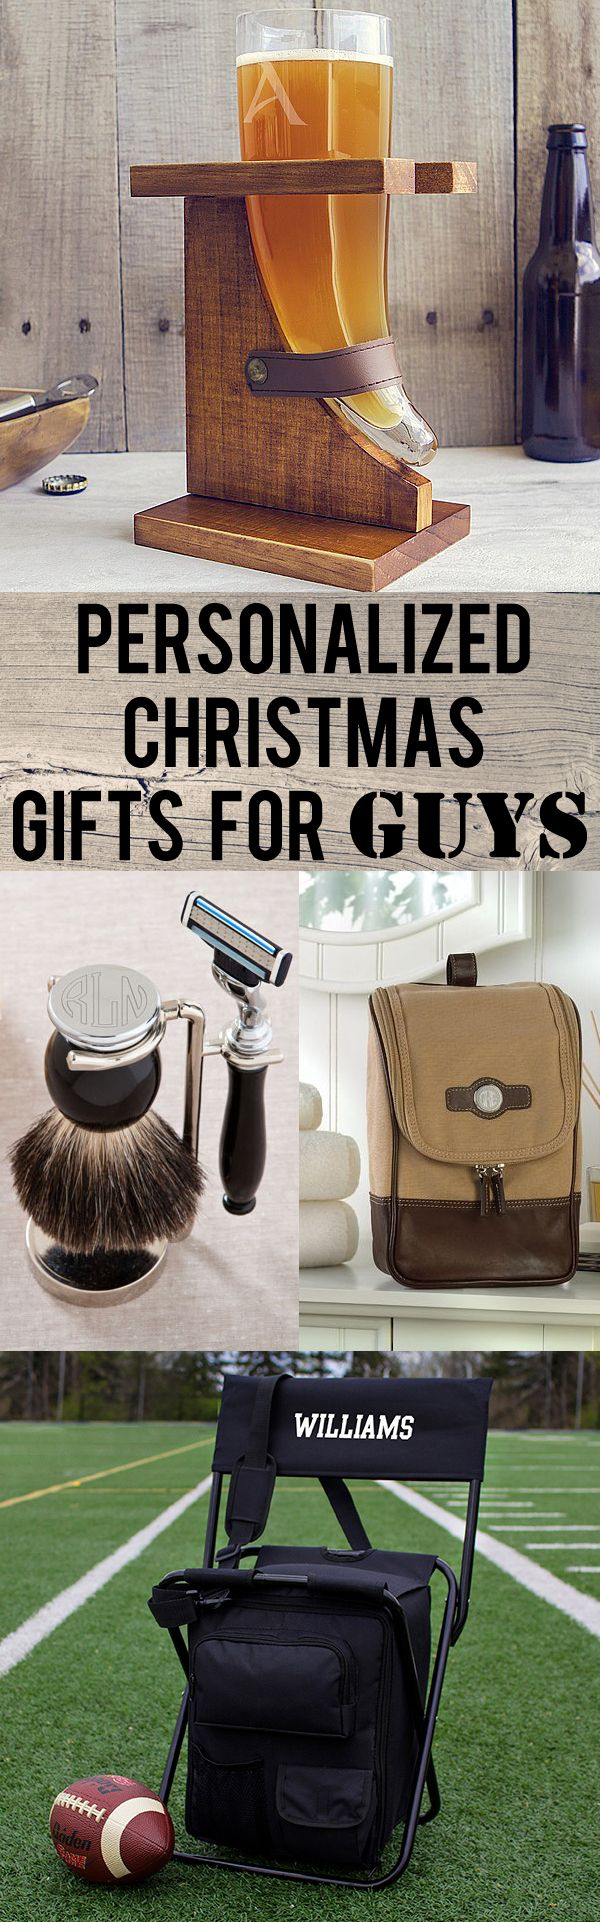 Whether you are searching for gift ideas for your husband, dad, boyfriend brother or best friend, we've searched for unique personalized gifts that are unique, functional, and unforgettable. From engraved Viking beer horns to personalized safety razor and bristle brush shaving sets, these gifts are sure to surprise and to please. These gifts and more can be ordered at http://myweddingreceptionideas.com/personalized_holiday_gifts_for_guys.asp